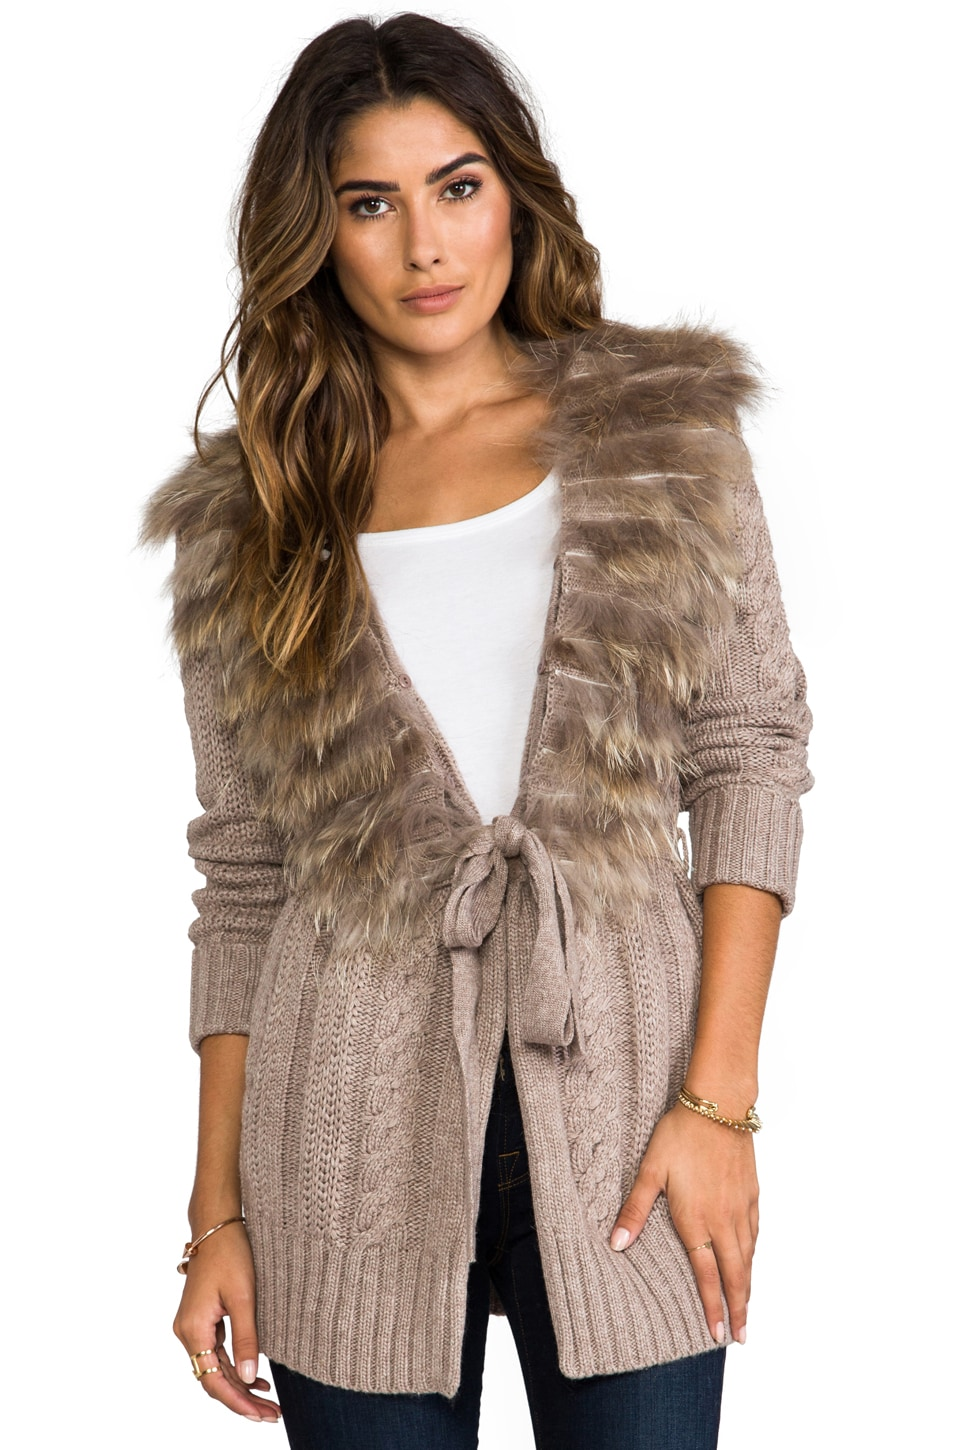 heartLoom Allie Fur Sweater in Taupe